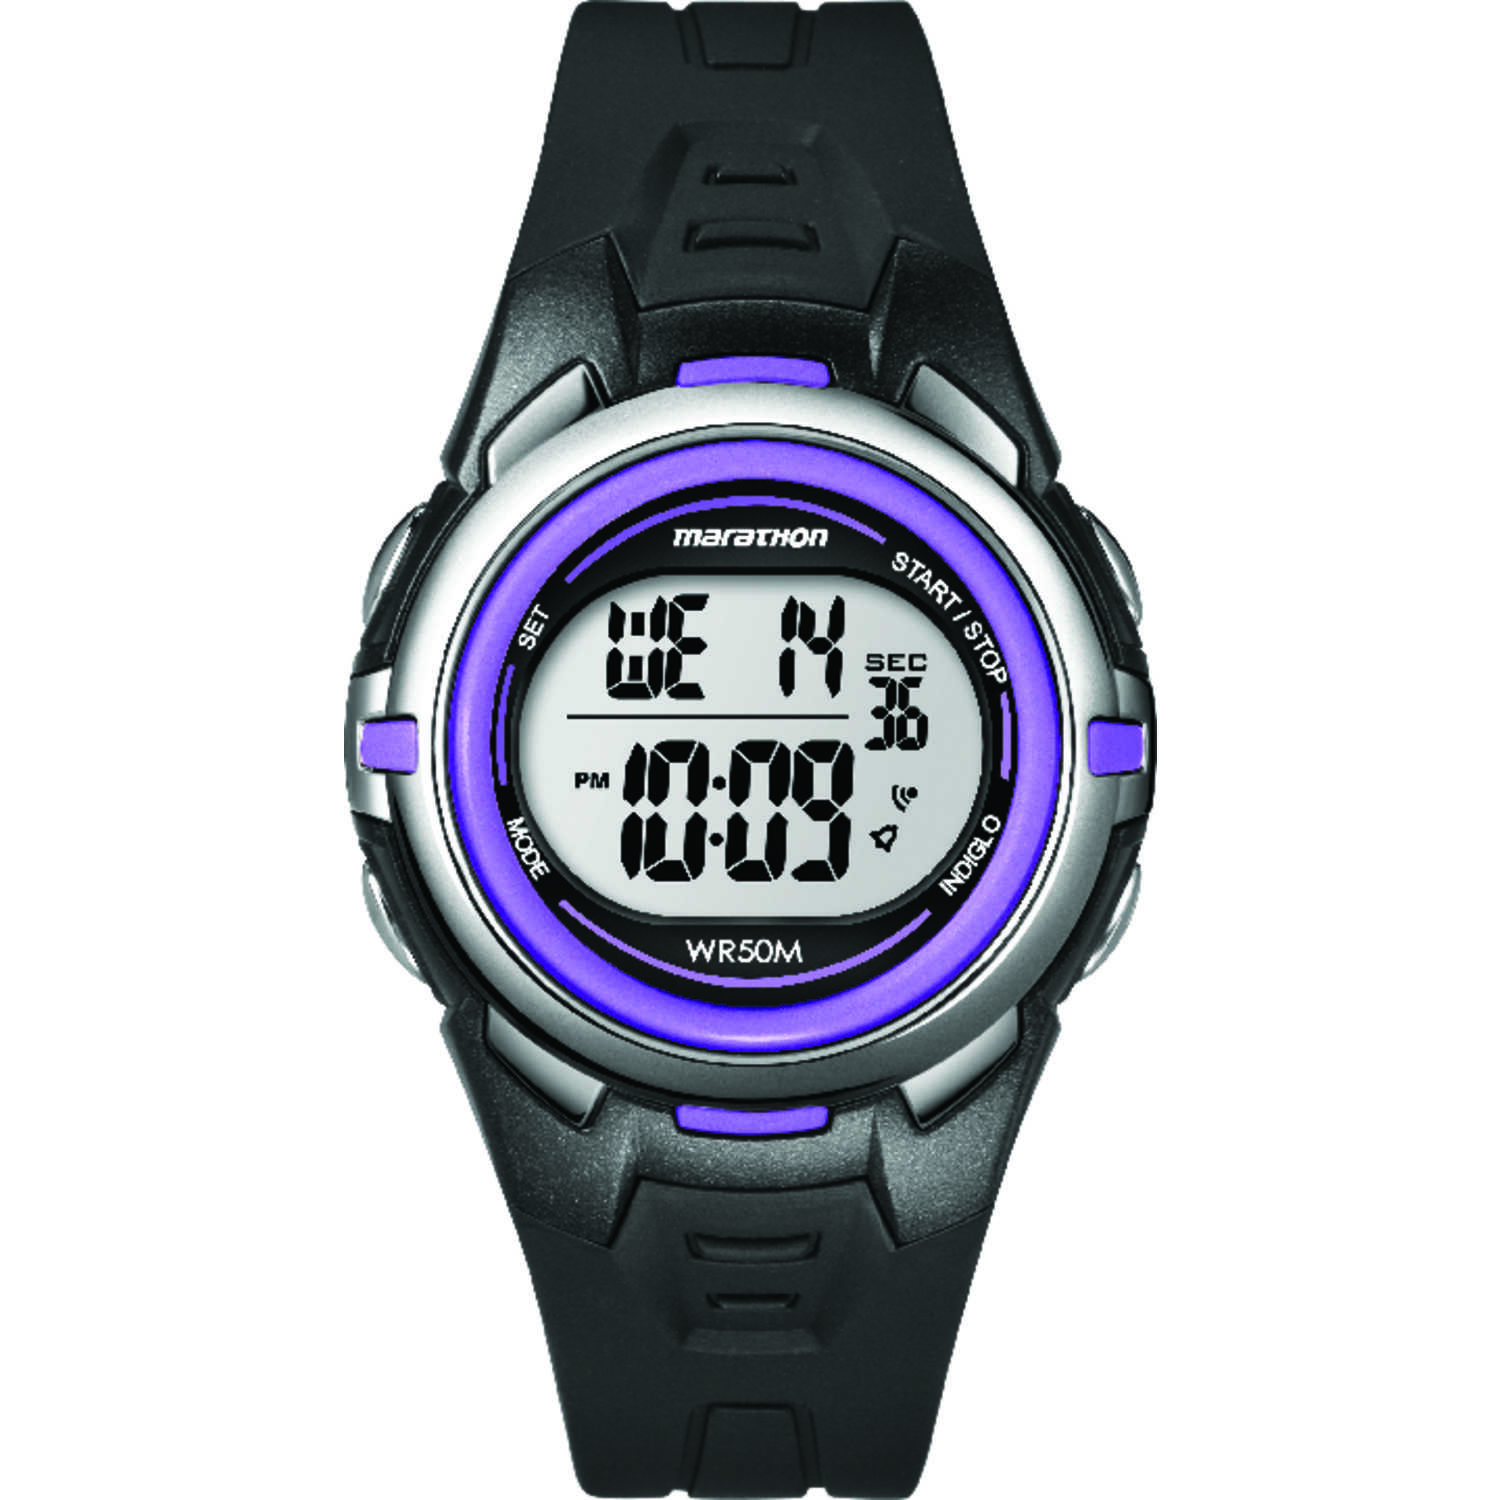 Timex  Marathon  Unisex  Round  Black/Purple  Watch  Digital  Resin  Water Resistant